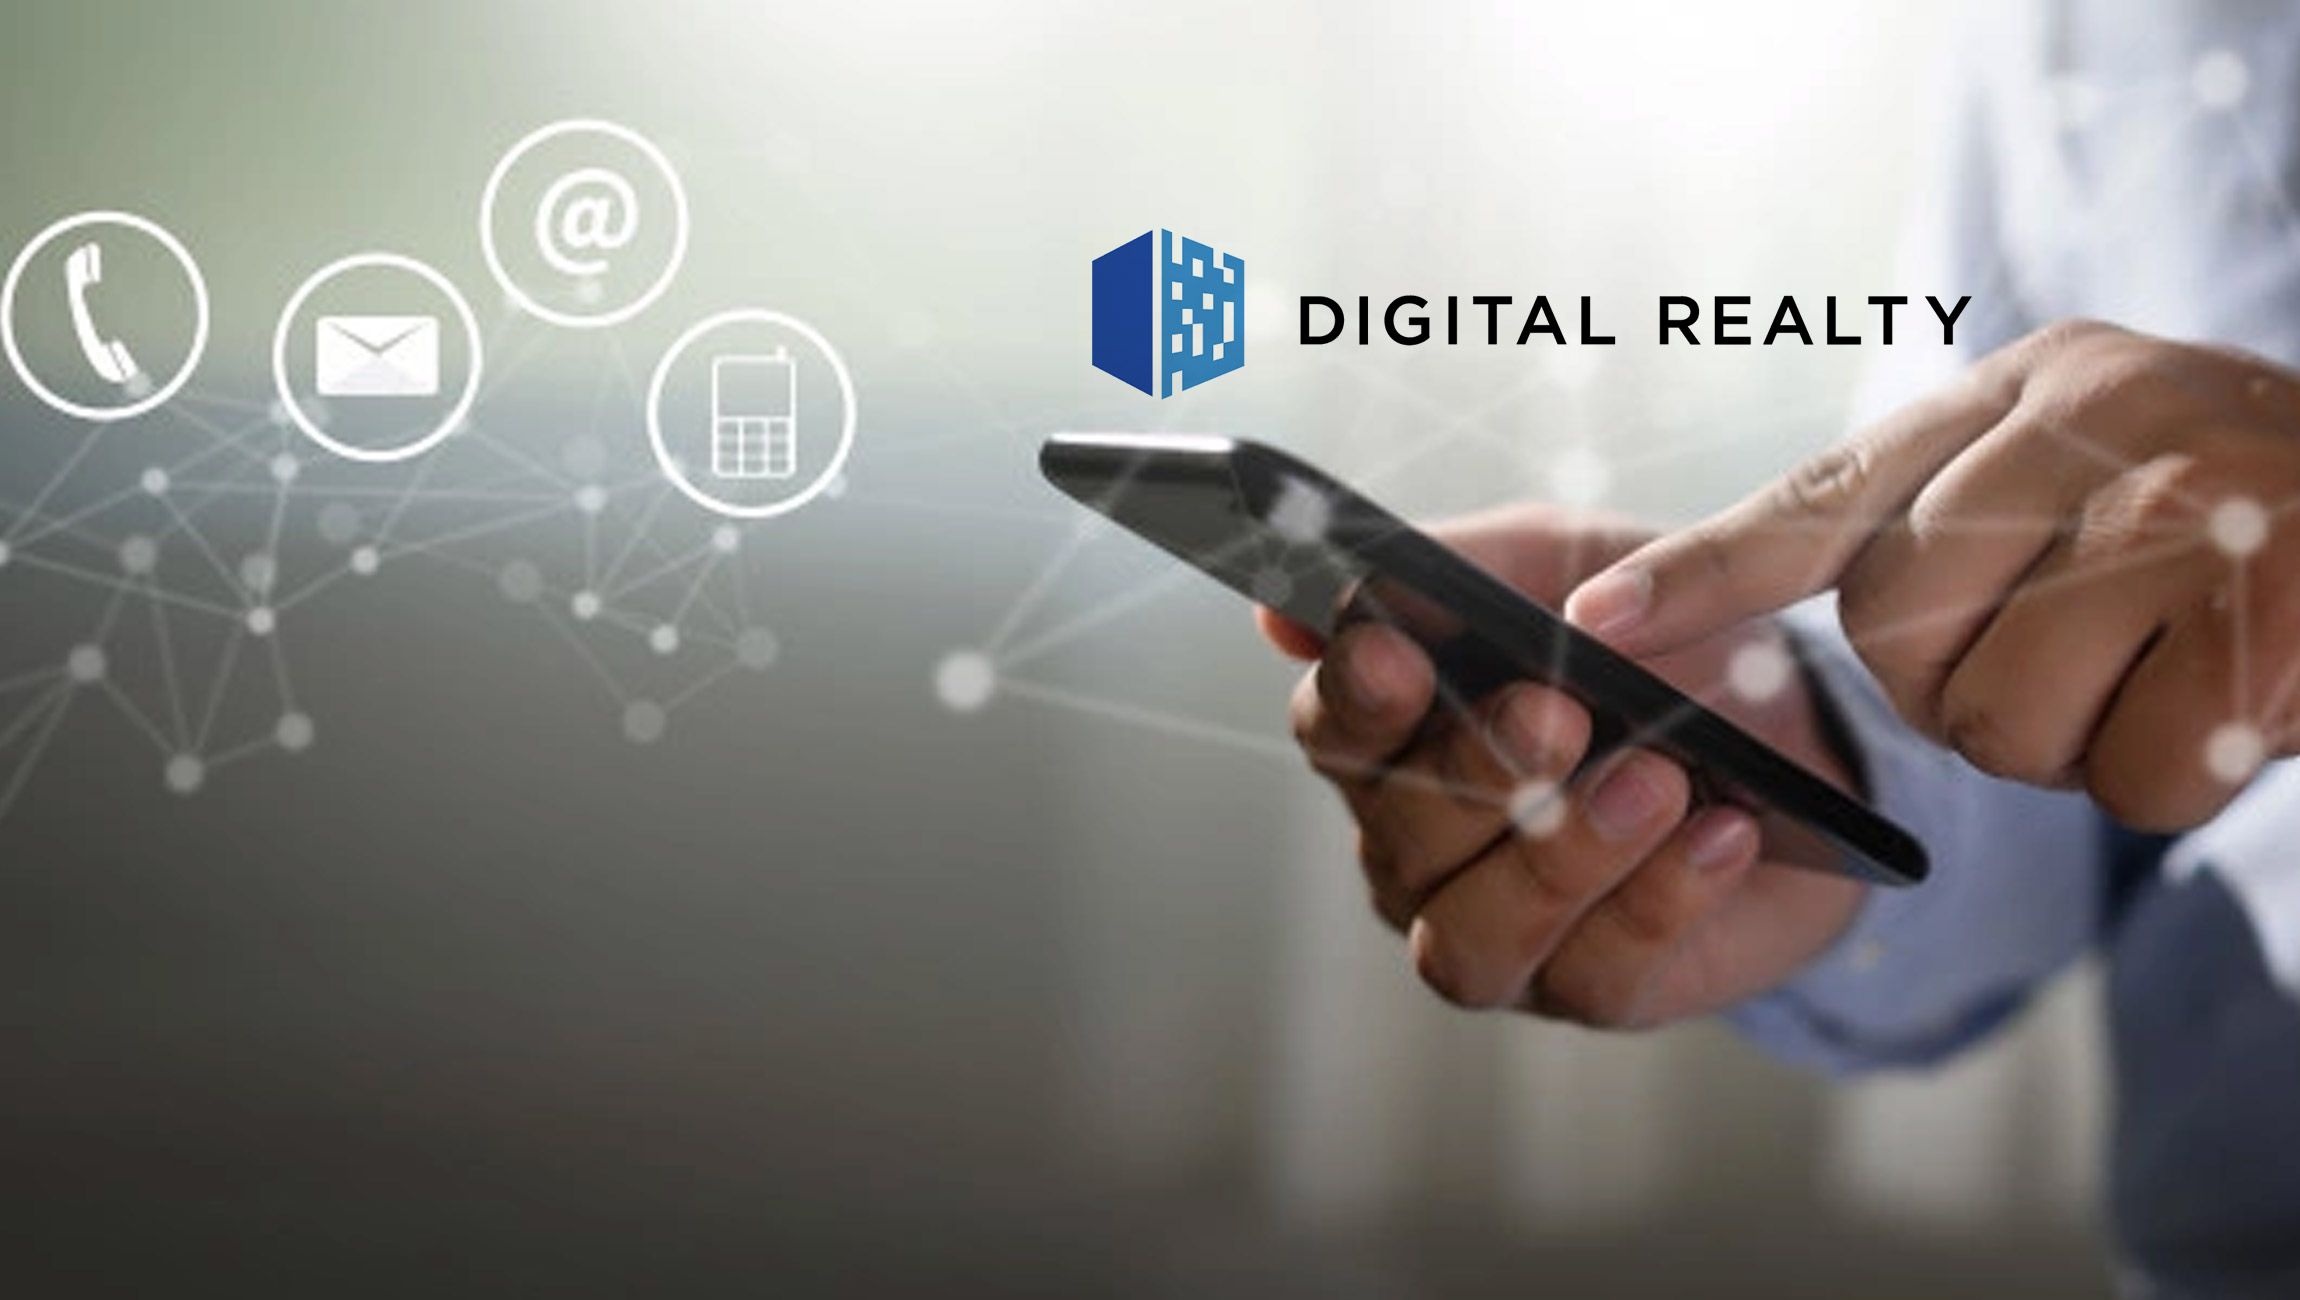 Digital Realty Lays Out Industry Manifesto For Enabling Connected Data Communities